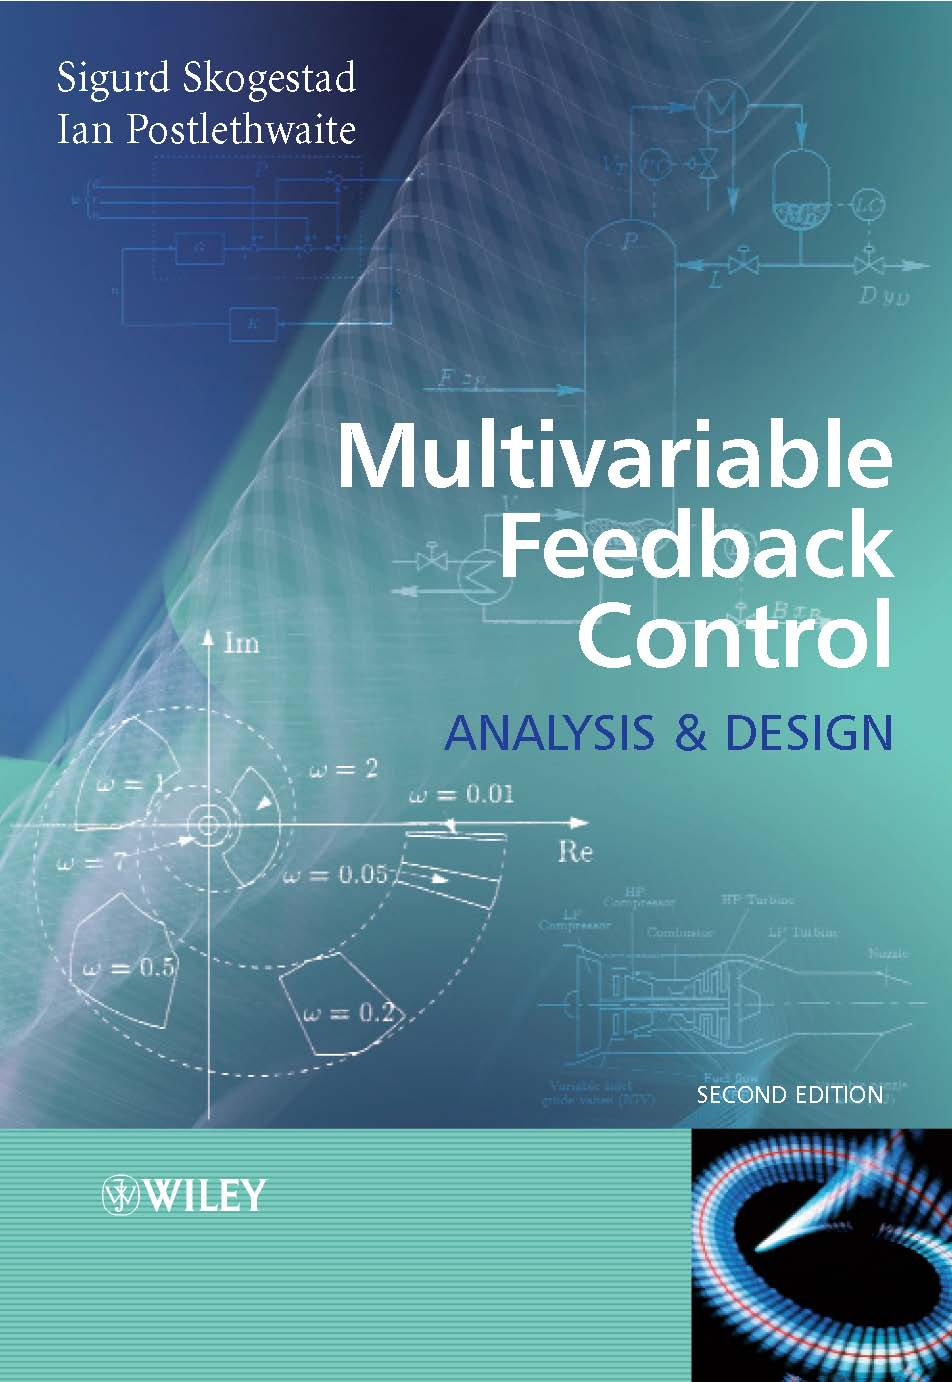 multivariable feedback control book cover